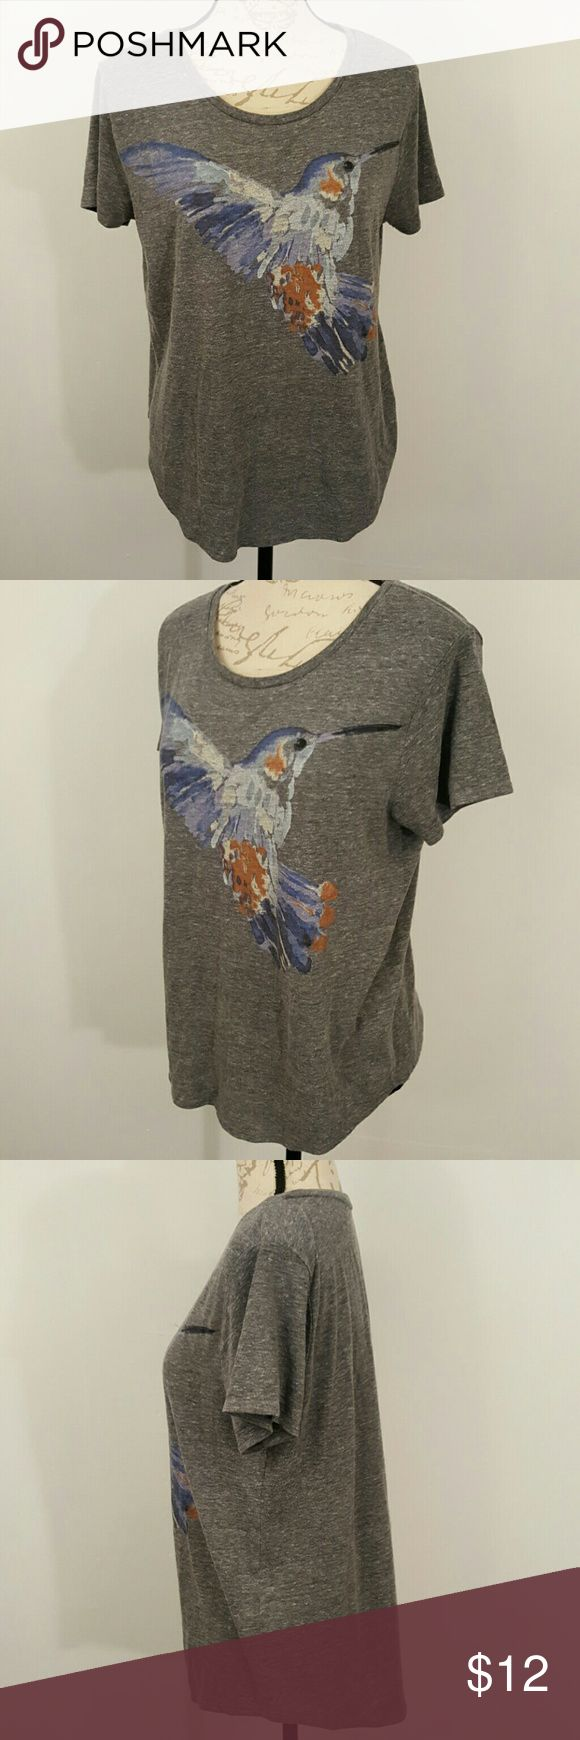 Lucky Brand XL Hummingbird Bird Soft T Shirt Gray This is a Lucky Brand Tshirt. It has a hummingbird on the front. It is a Ladies XL. I am a M-L and it is lose on me. I adore Lucky Brand clothing and this is a softer Tshidt.   No smoking home. Lucky Brand Tops Tees - Short Sleeve